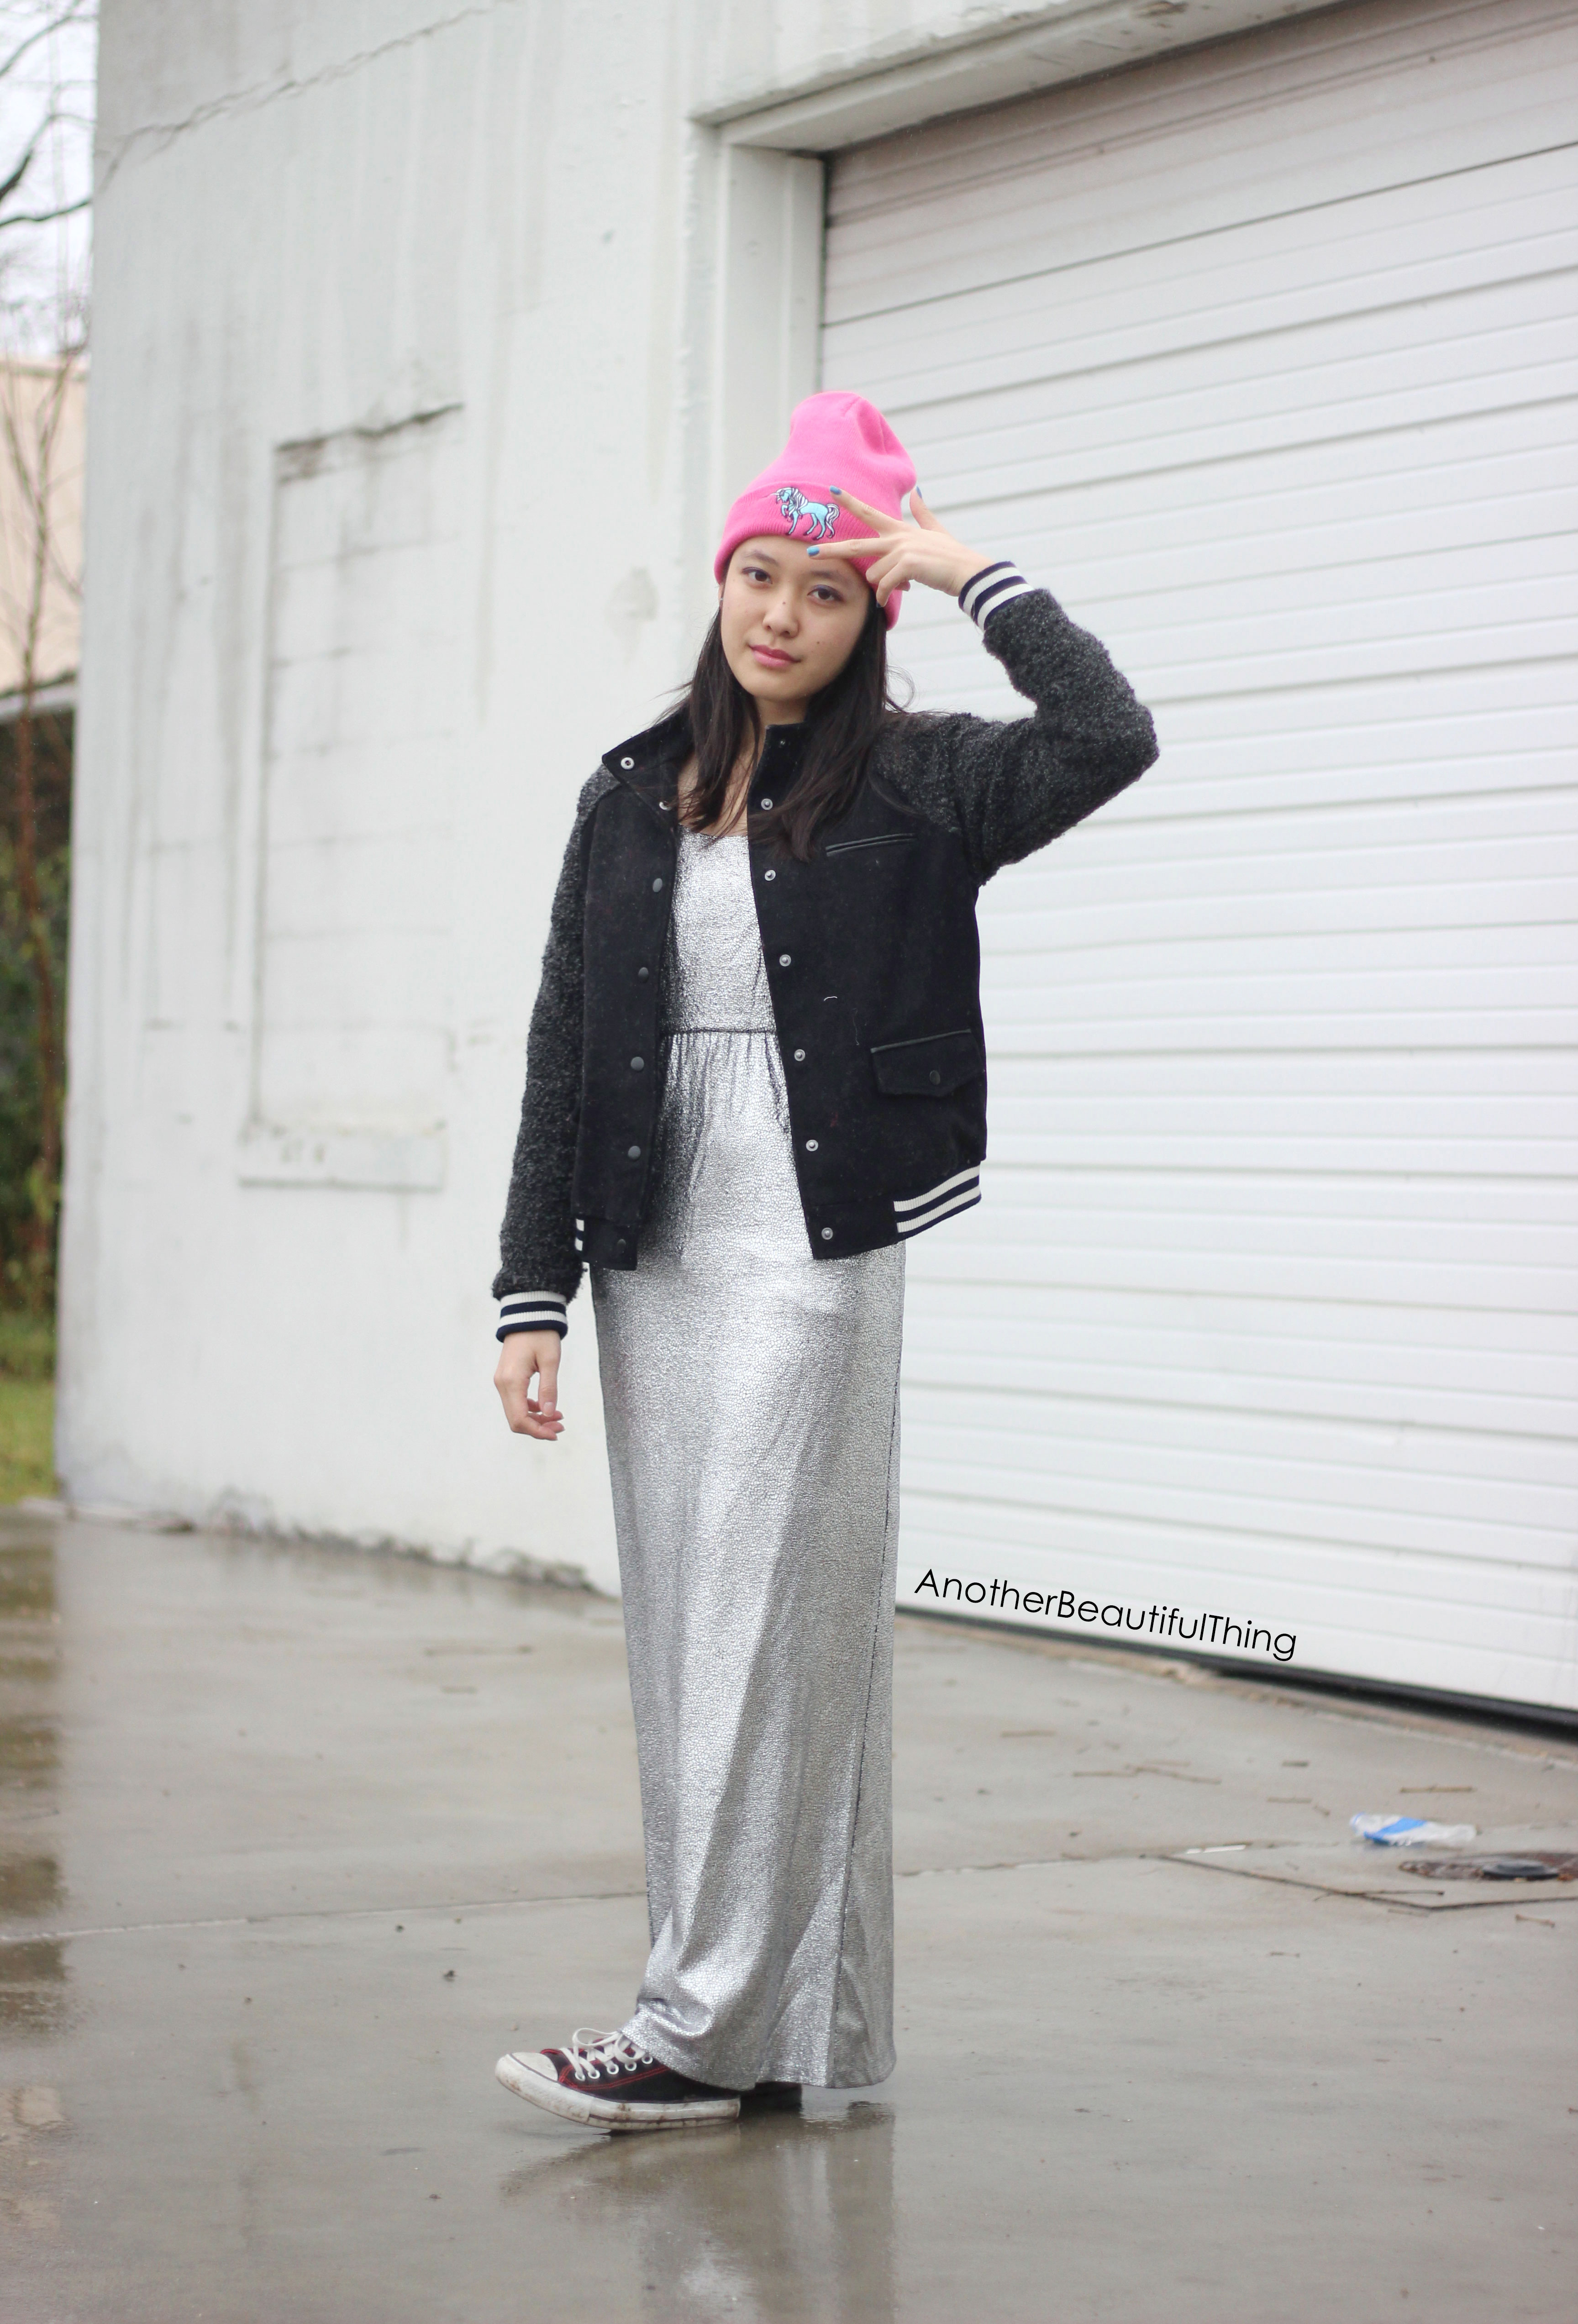 Silver sequin maxi gown with black converse and beanie